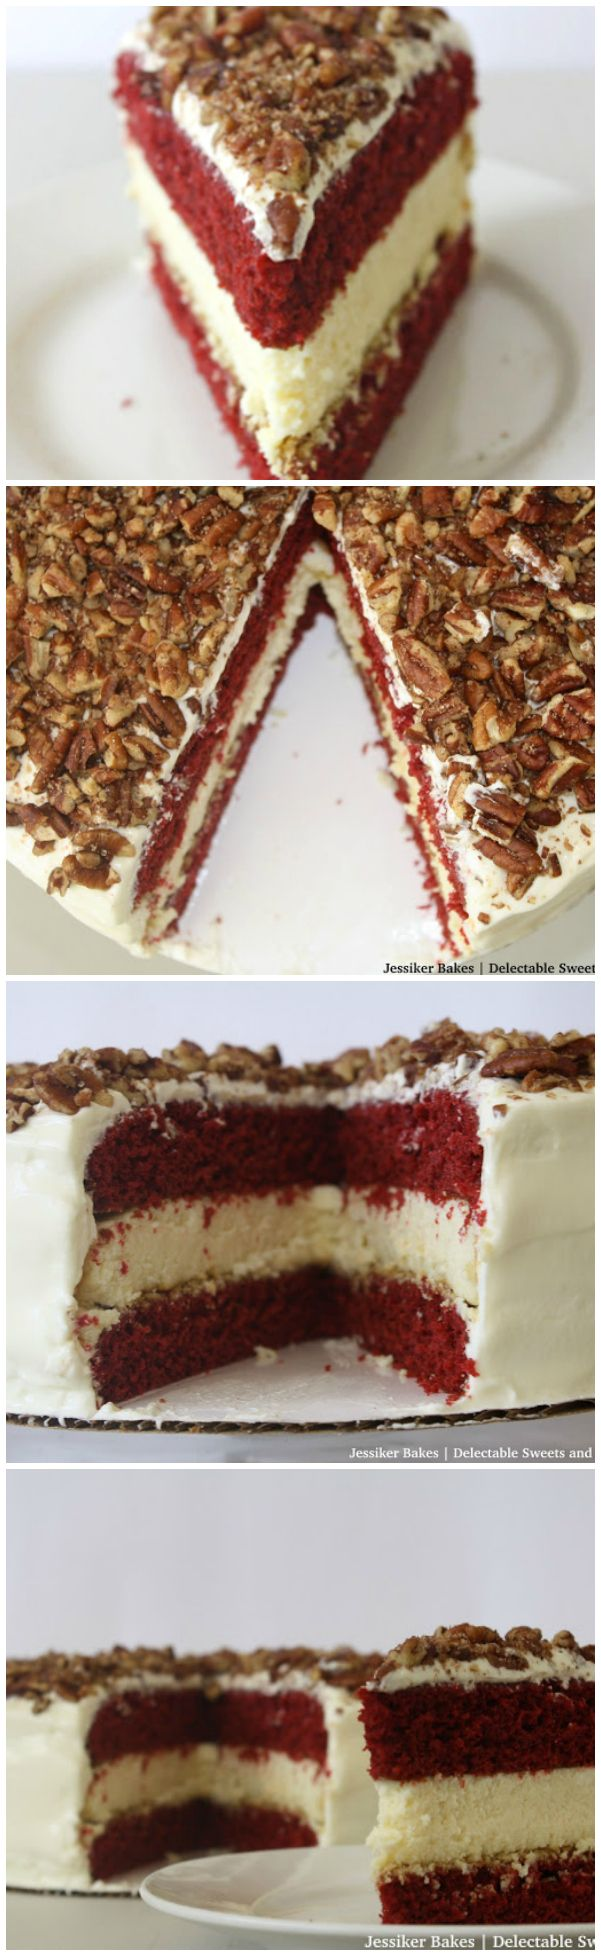 Thick delicious cheesecake is layered between moist decadent slices of Red Velvet Cake. Cream cheese frosting is on the outside of this delicious cake!